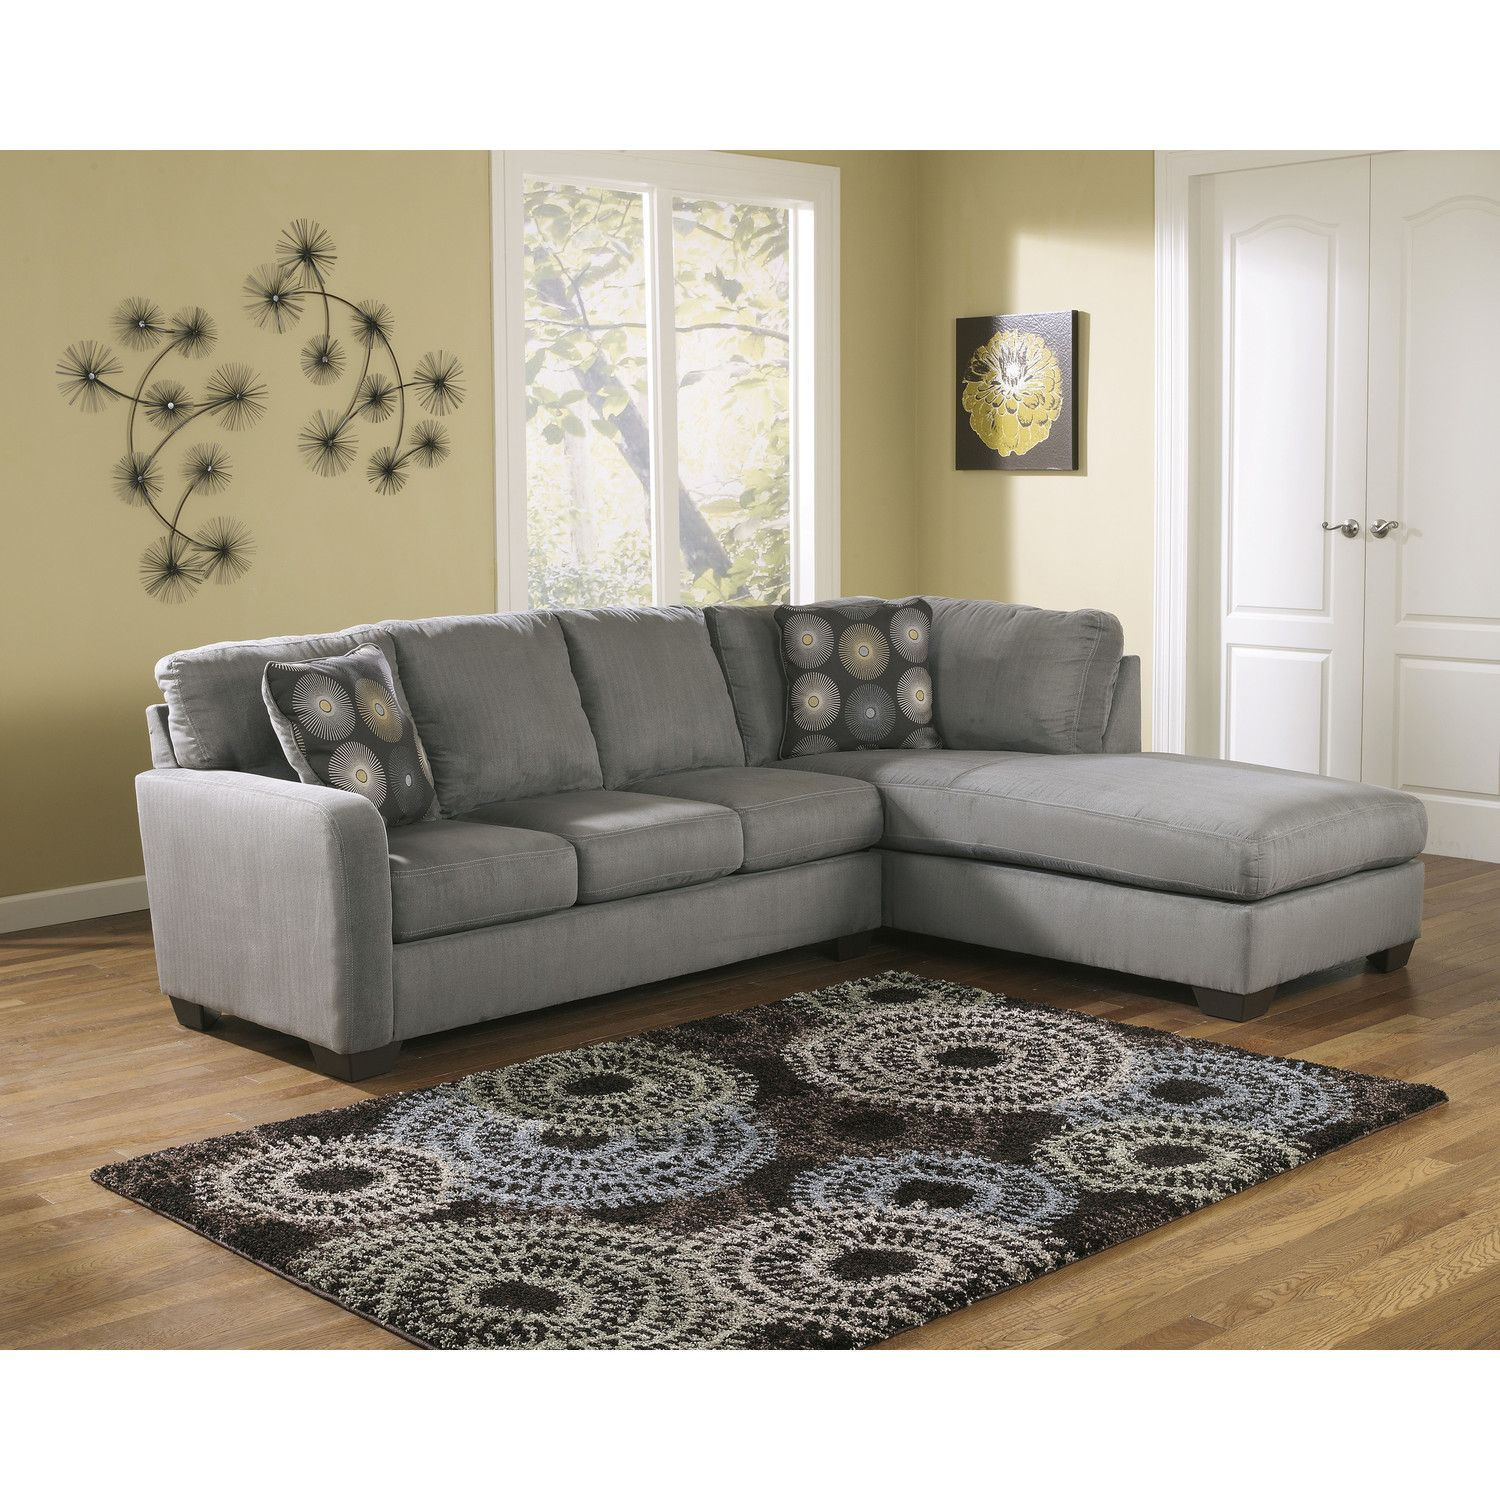 720 Signature Design By Ashley Waverly Sectional New Place